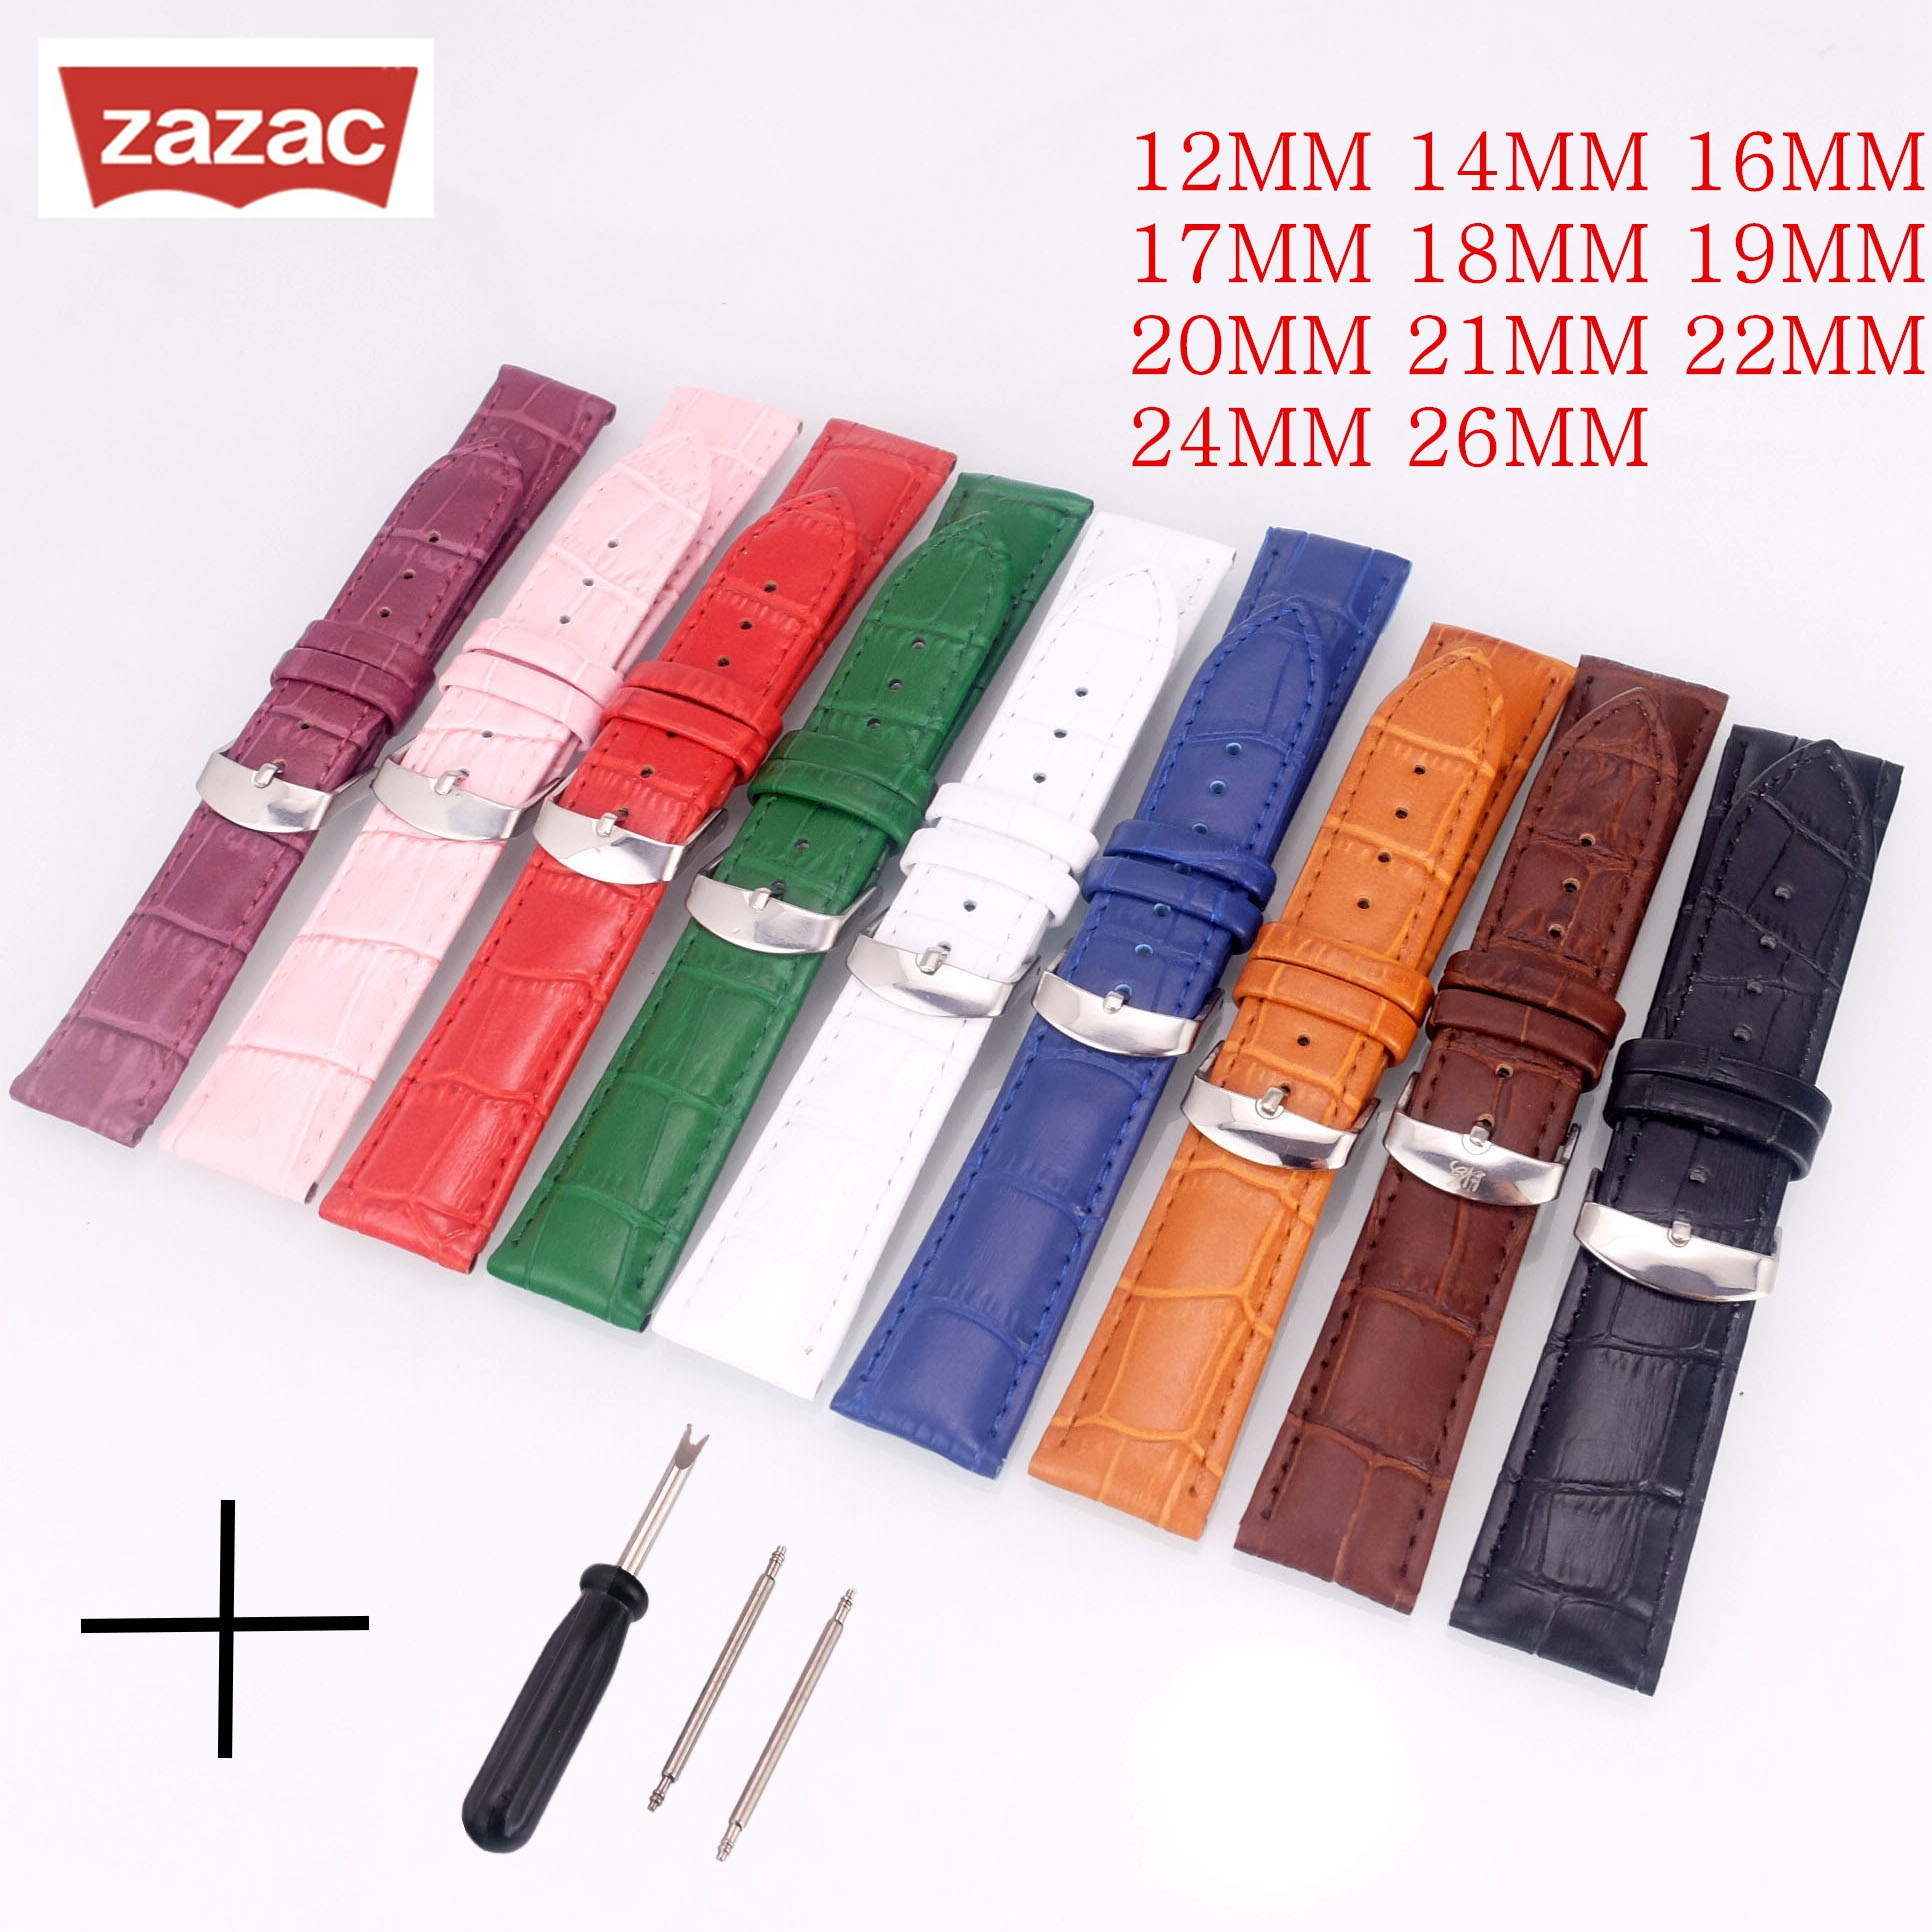 Leather Watches Band Strap 12-26mm 16mm 18mm 19mm 20mm 22mm Brown Pink White Green Black Blue Woman Man Watchbands Watch Belts